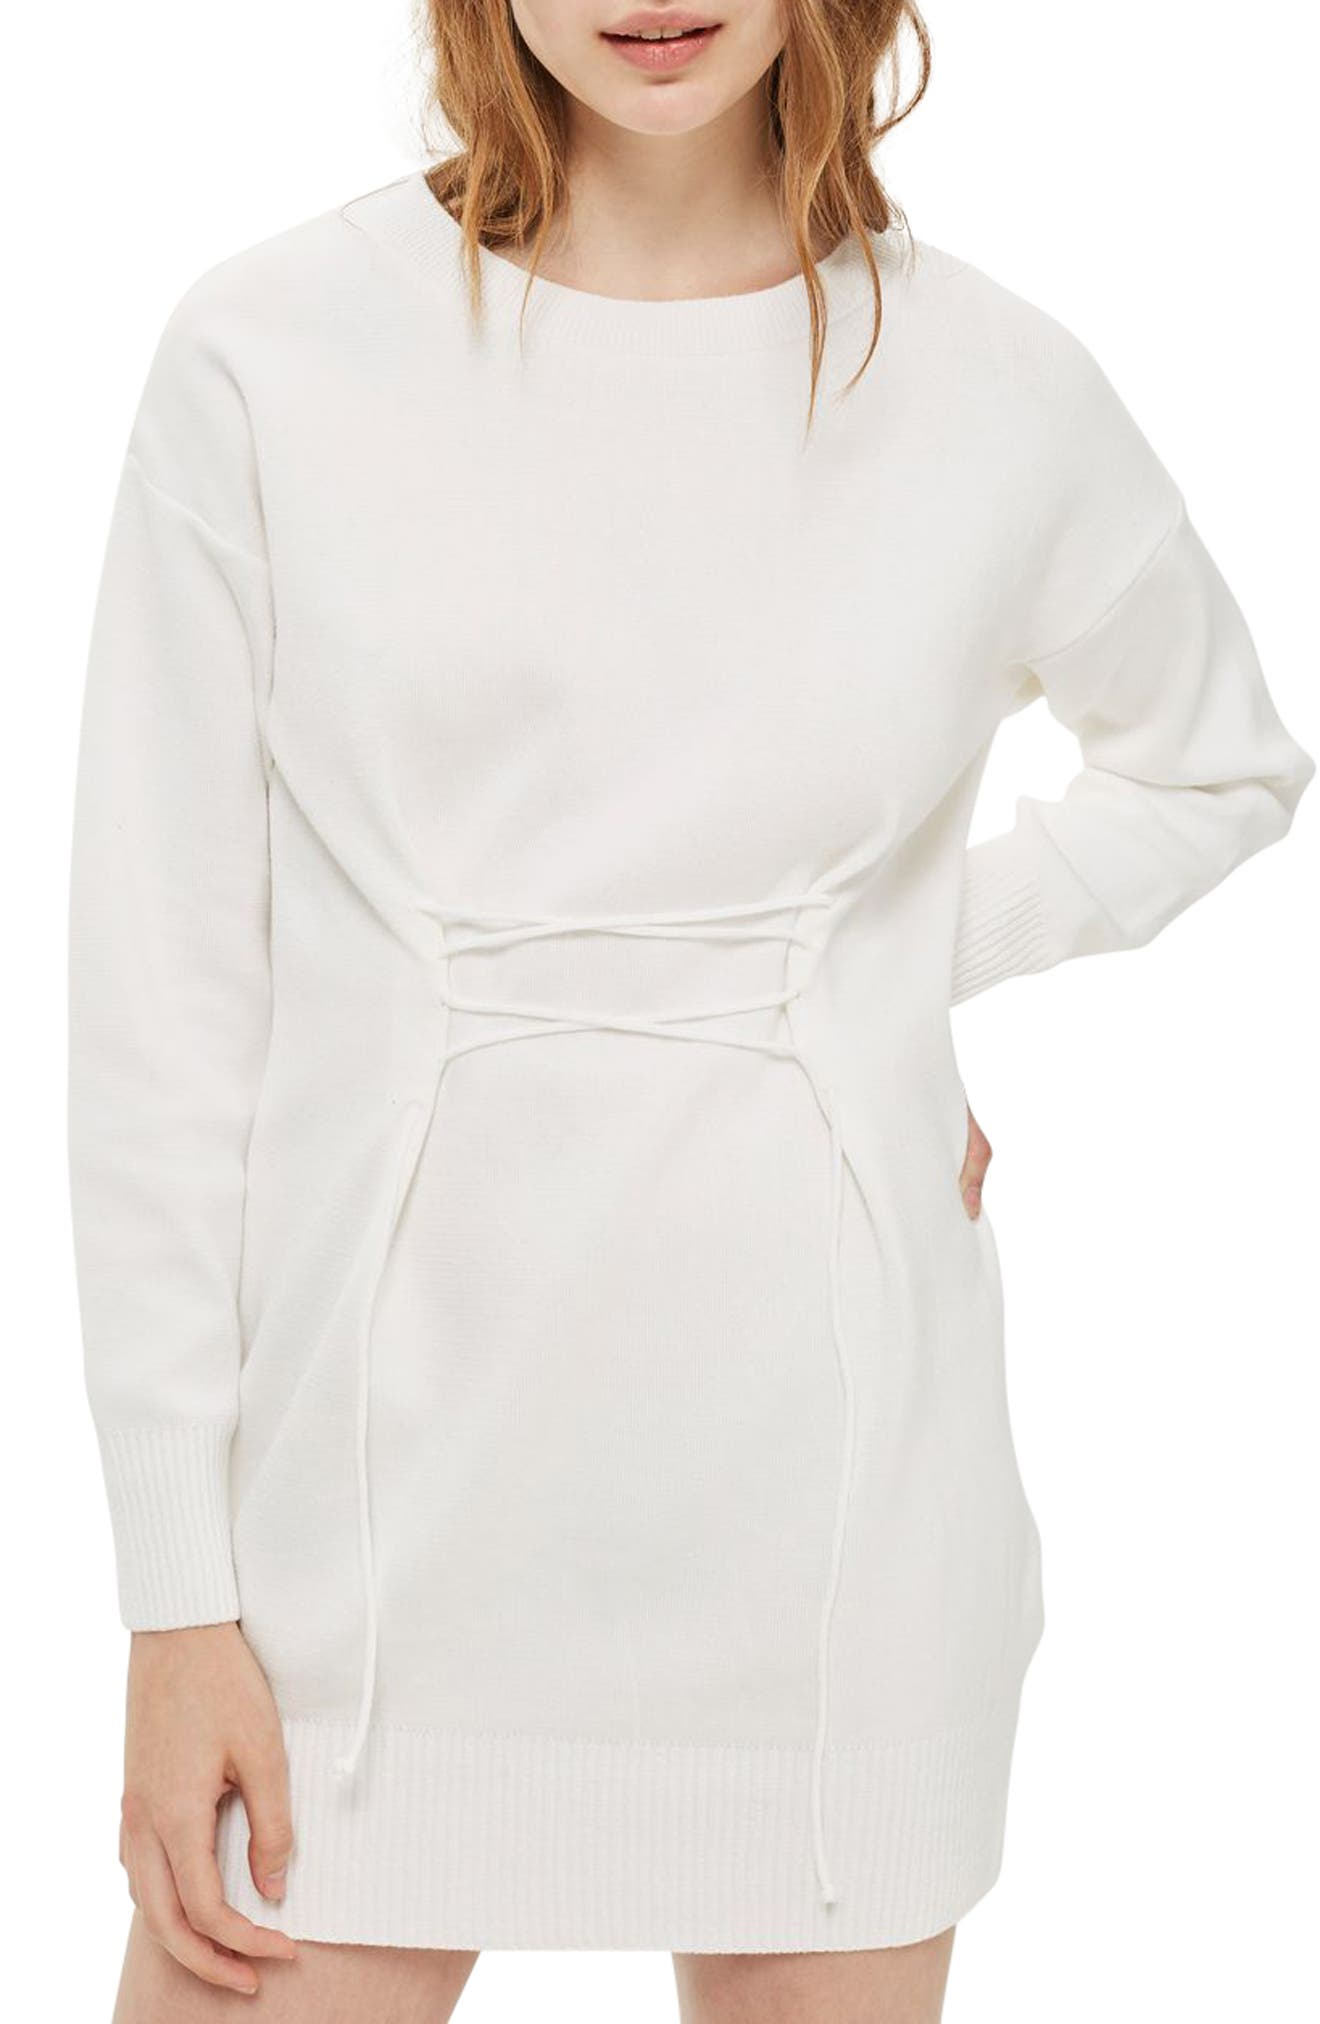 Topshop Corset Sweater Dress